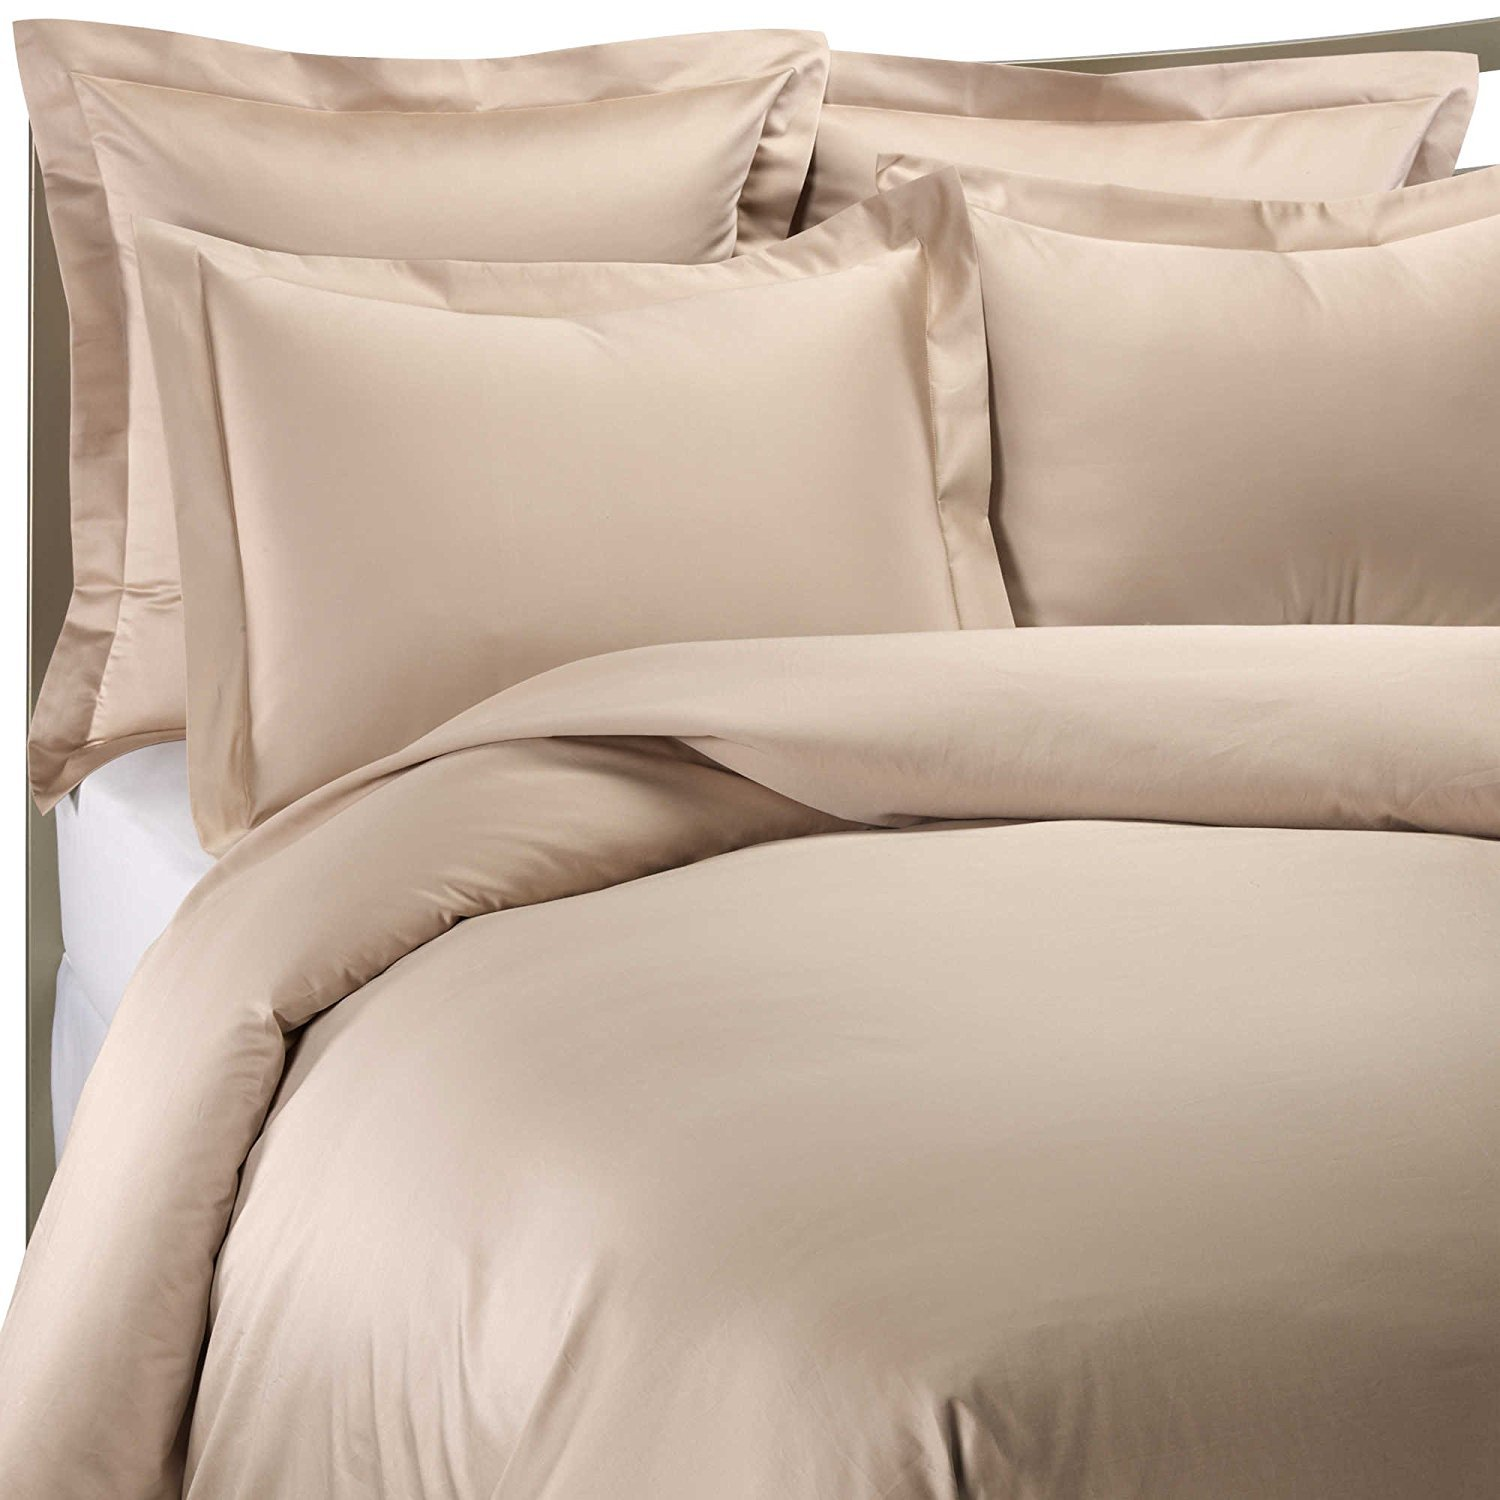 1000 Thread Count Standard Pillow Sham in Taupe